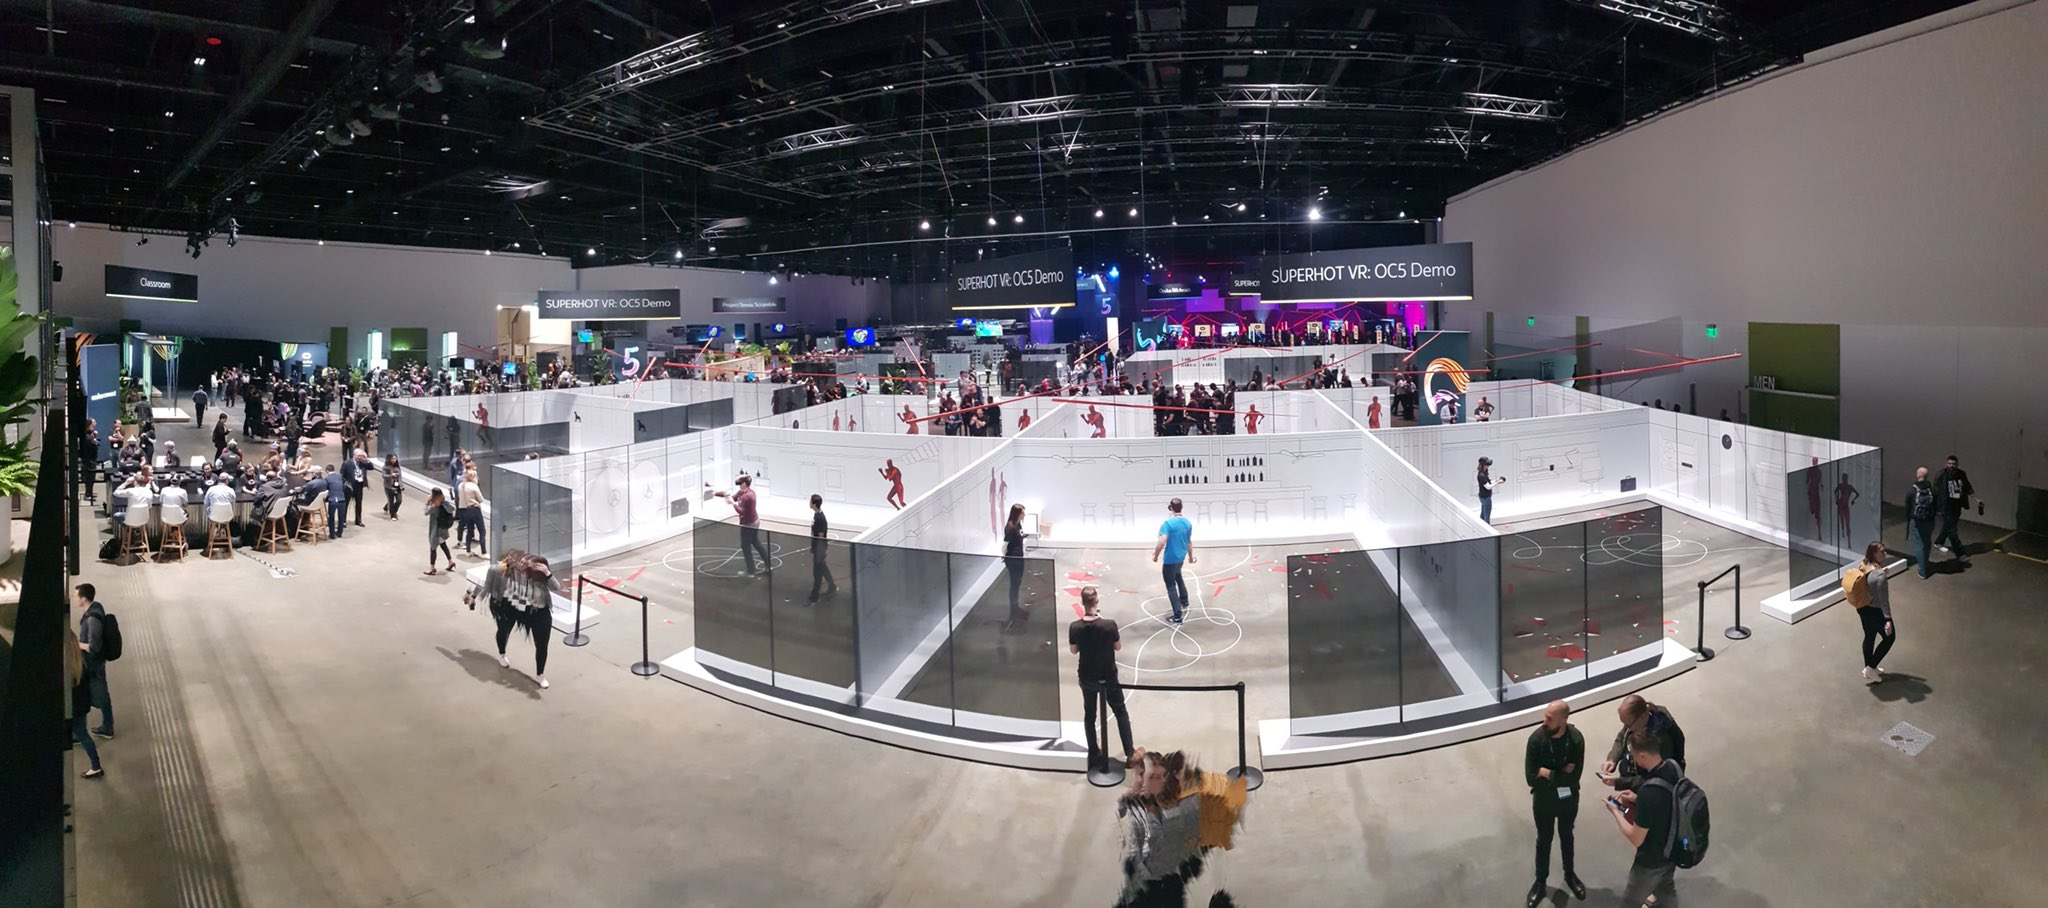 Arena Scale VR at OC5 is the future of VR